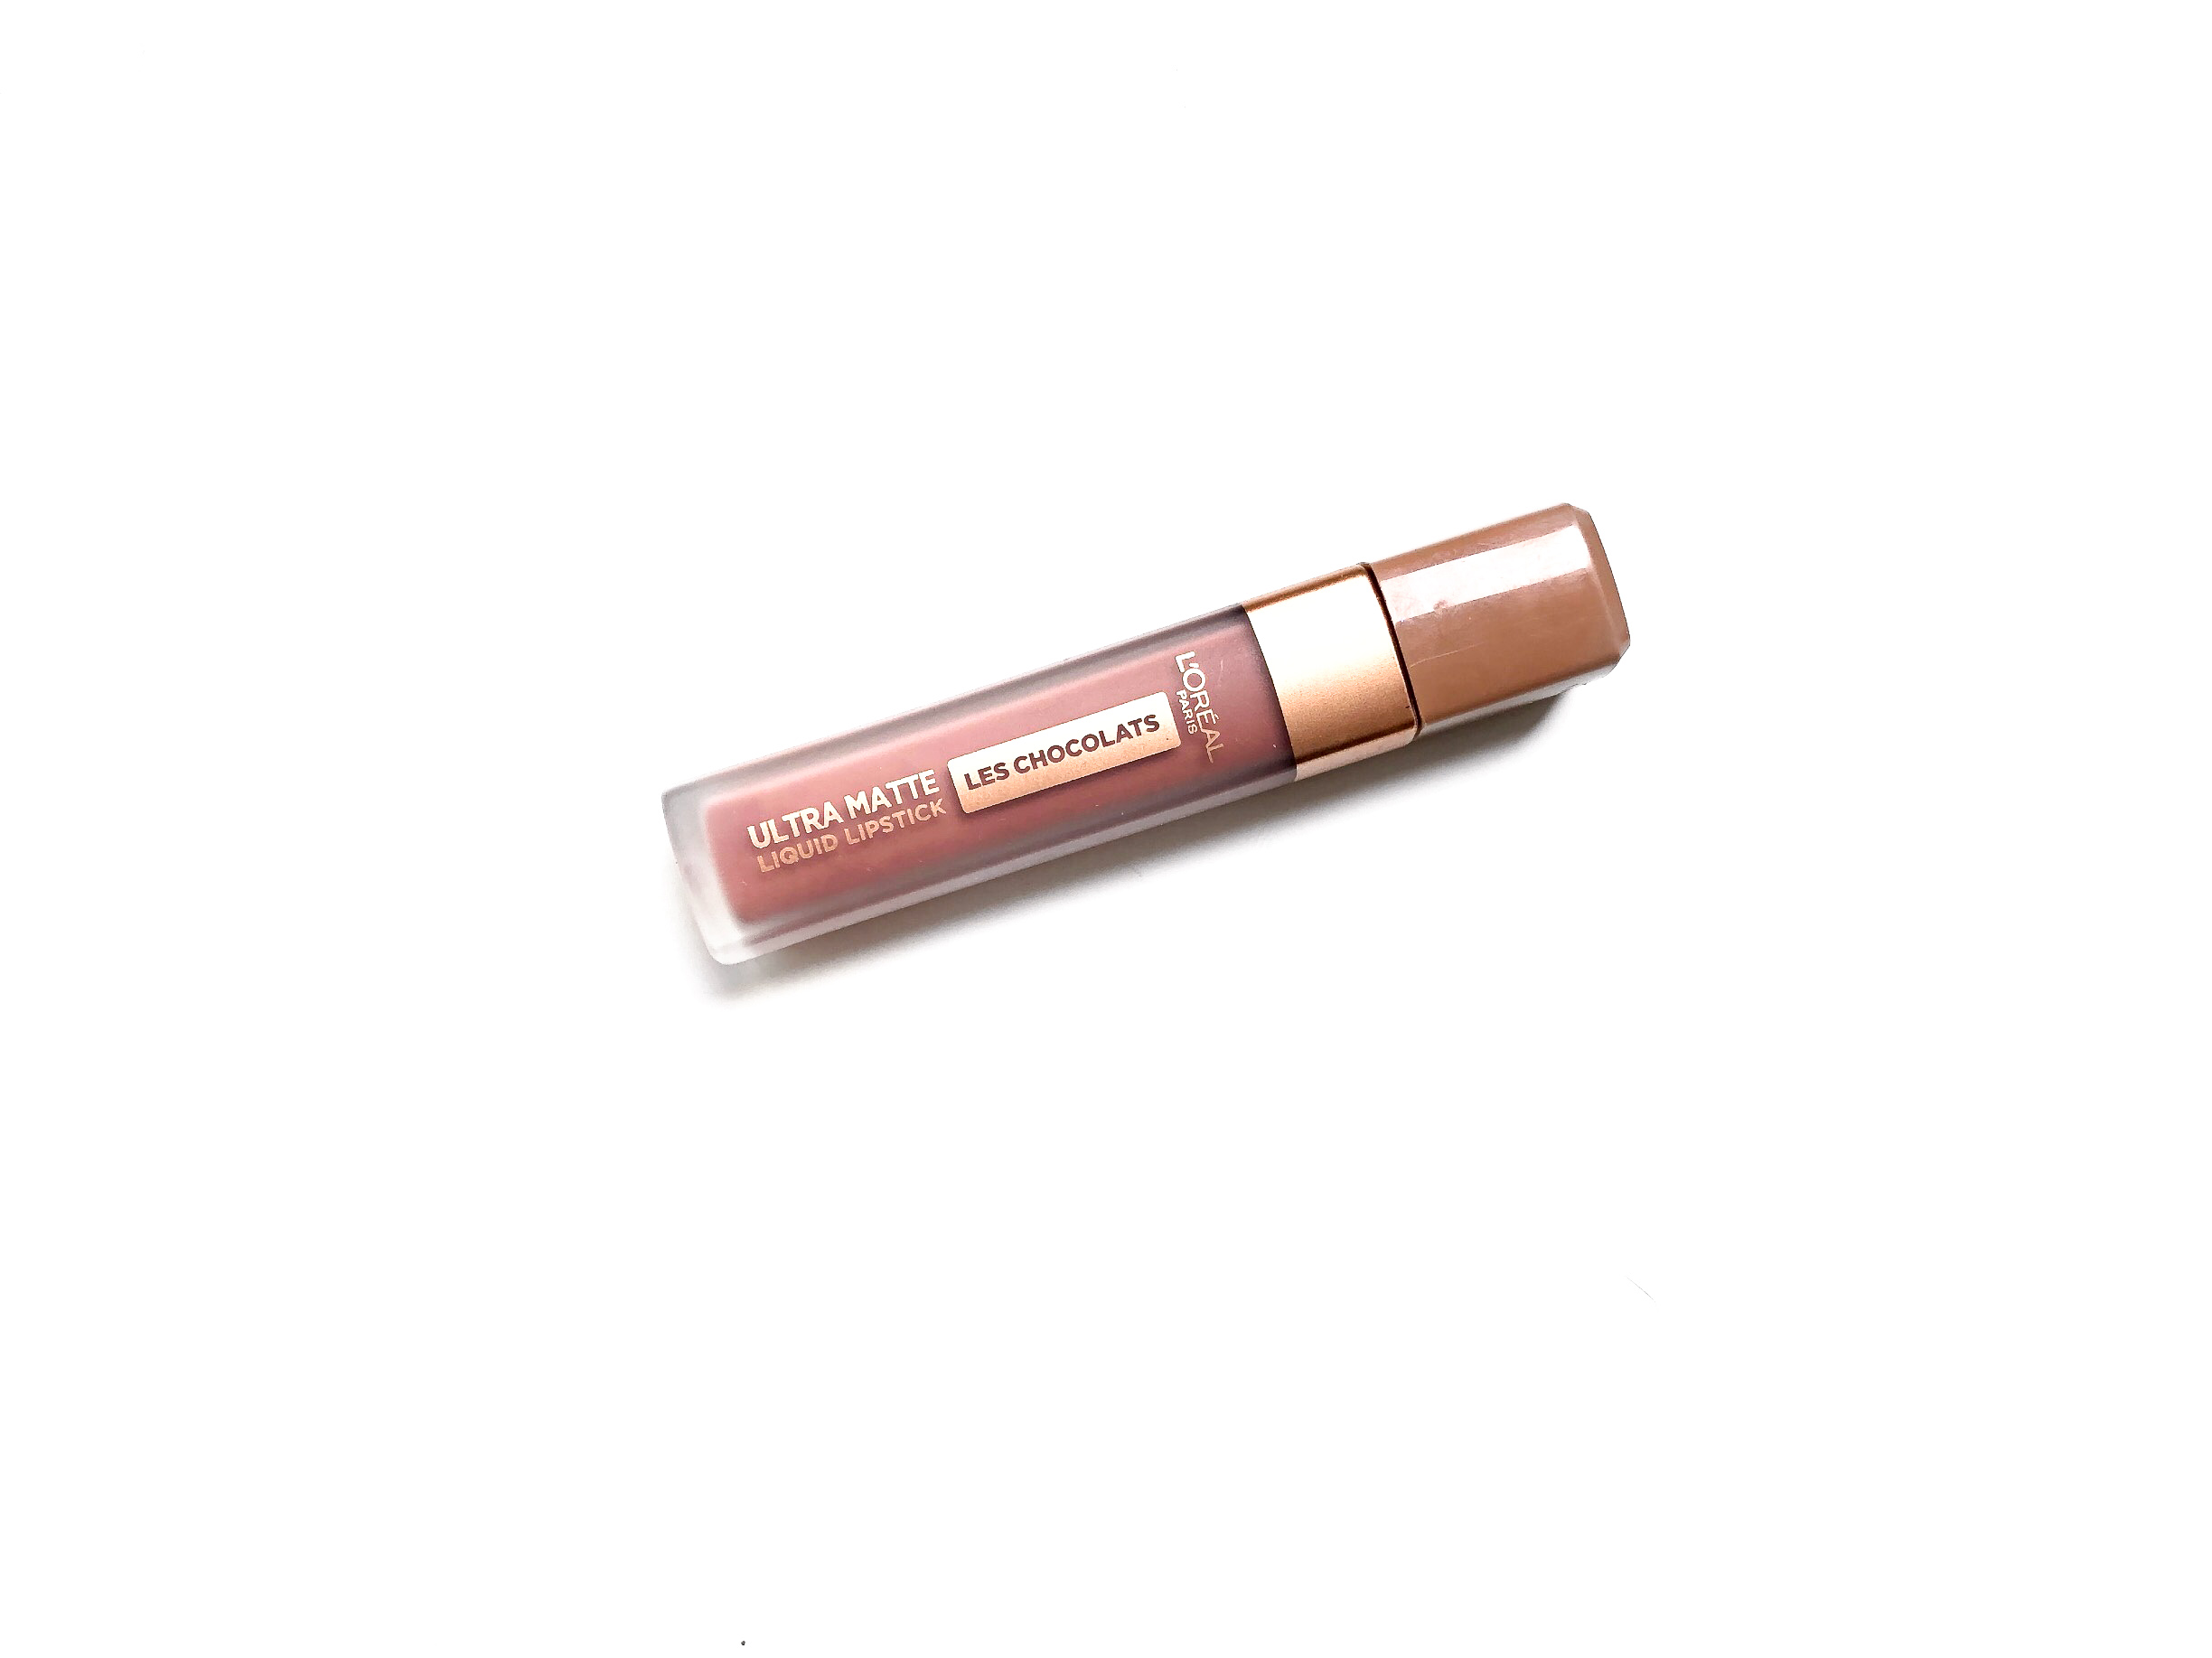 L'Oréal Dose Of Cocoa Les Chocolates Ultra Matte Liquid Lipstick Review 2